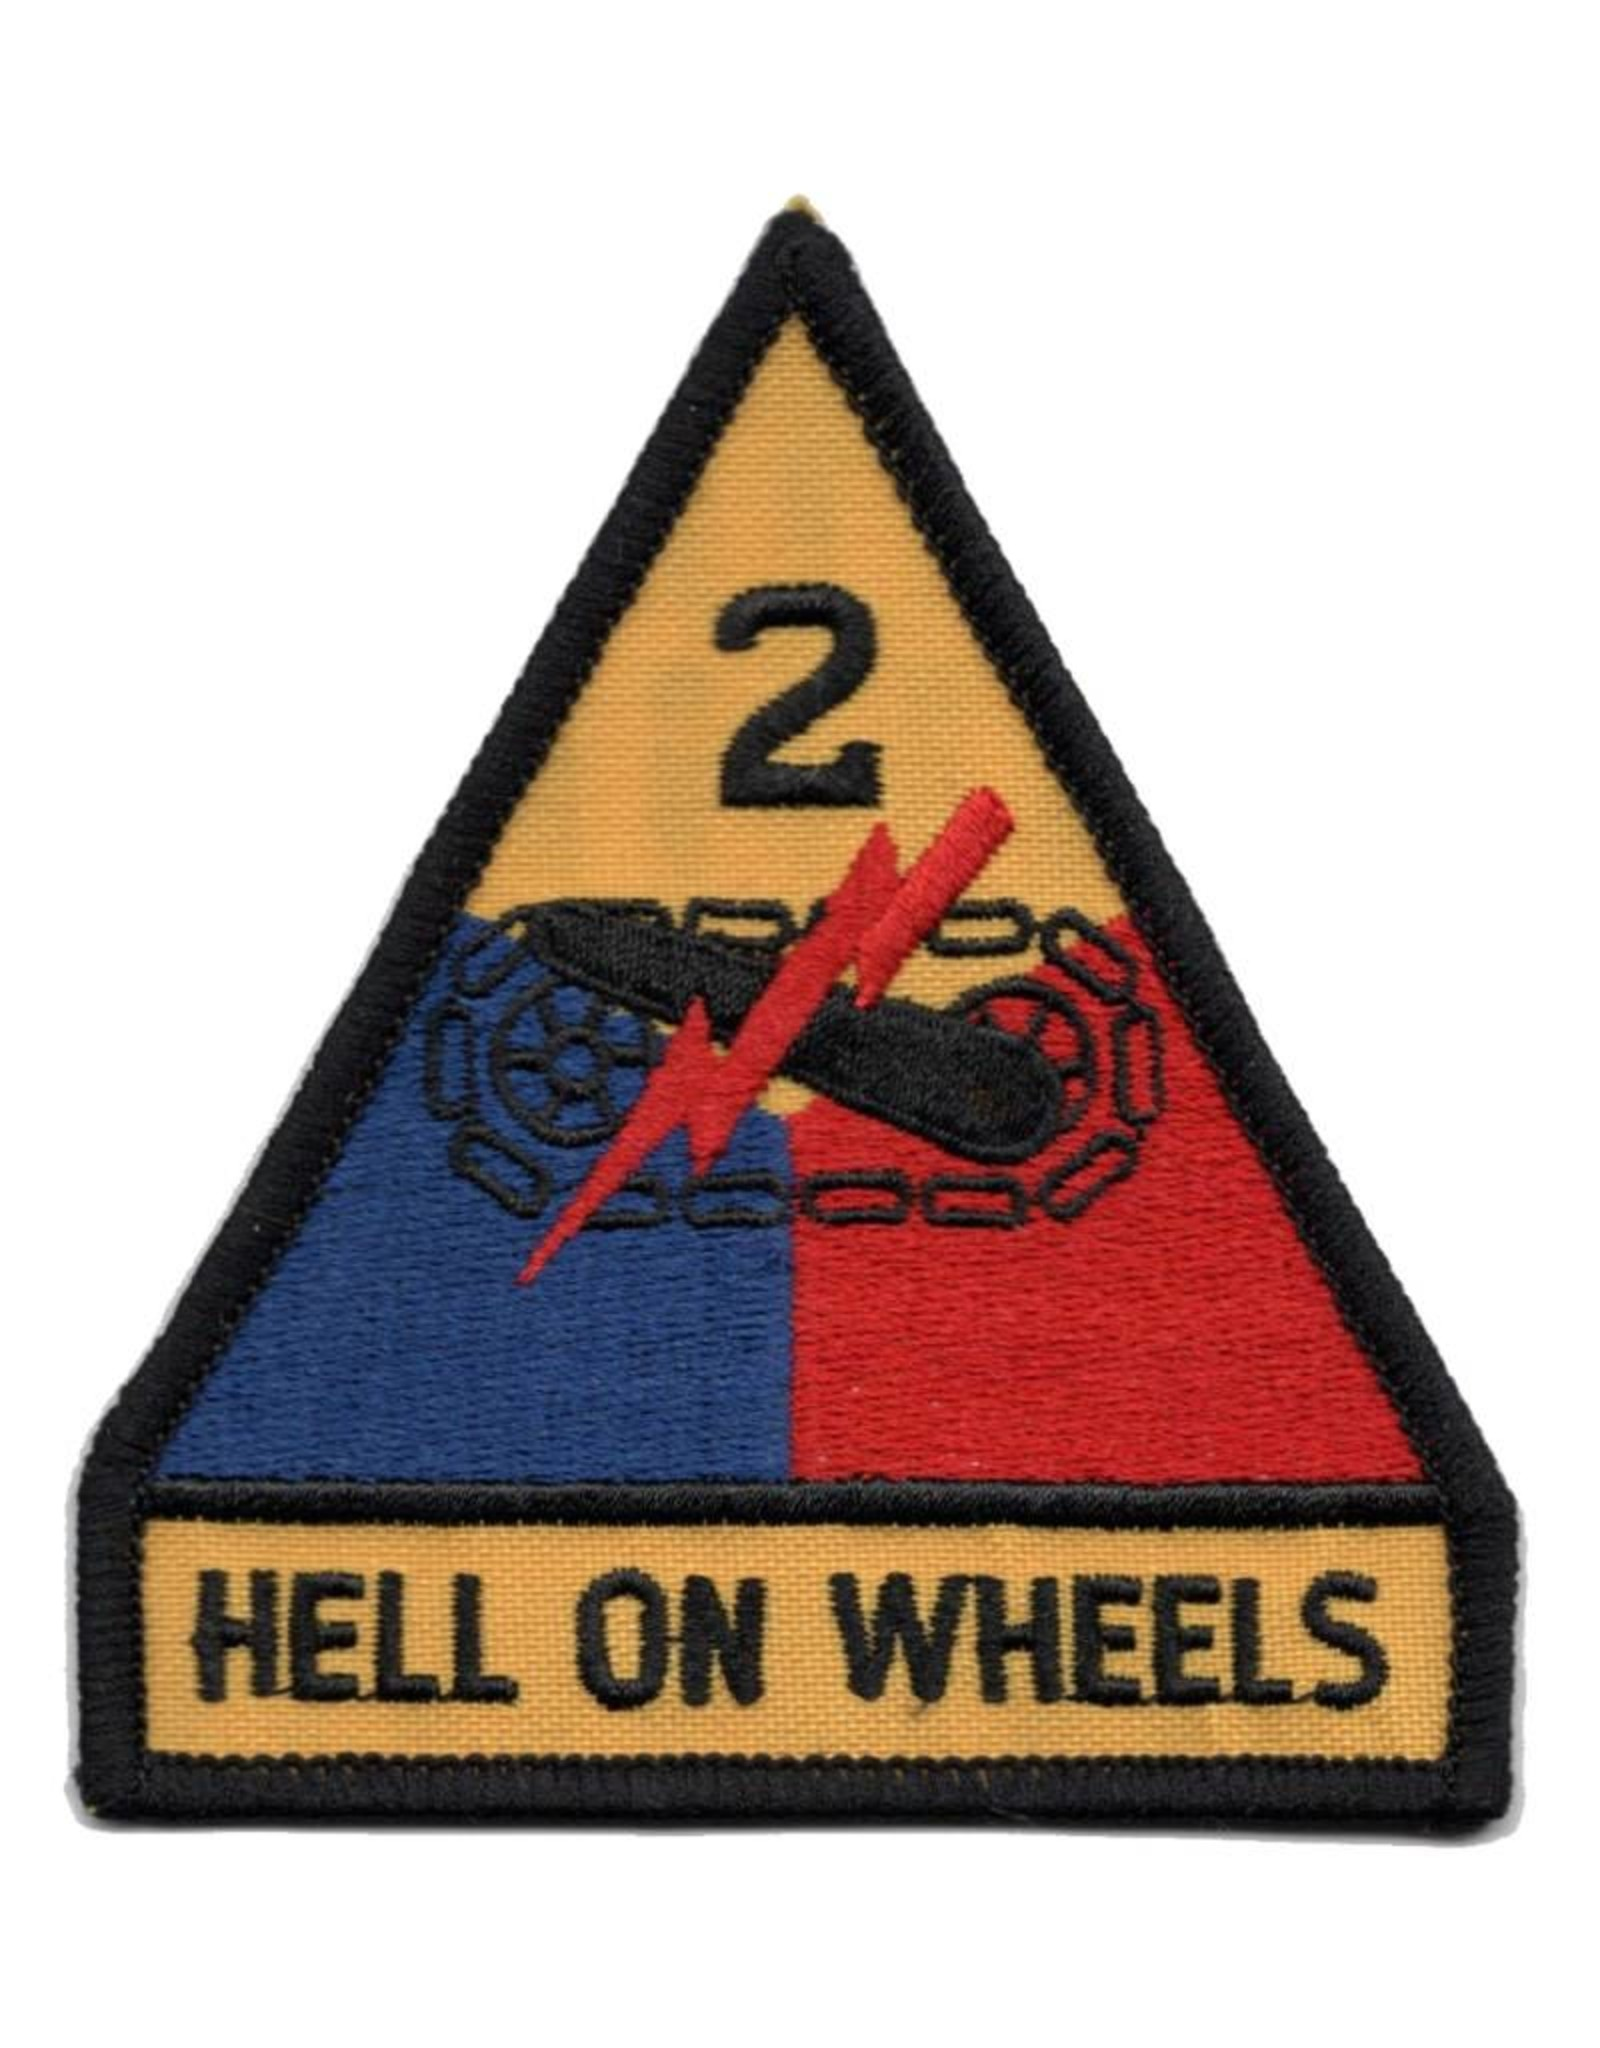 """MidMil Embroidered 2nd Armored Division Emblem Patch with """"Hell on Wheels"""" Motto 3.4"""" wide x 3.9"""" high"""